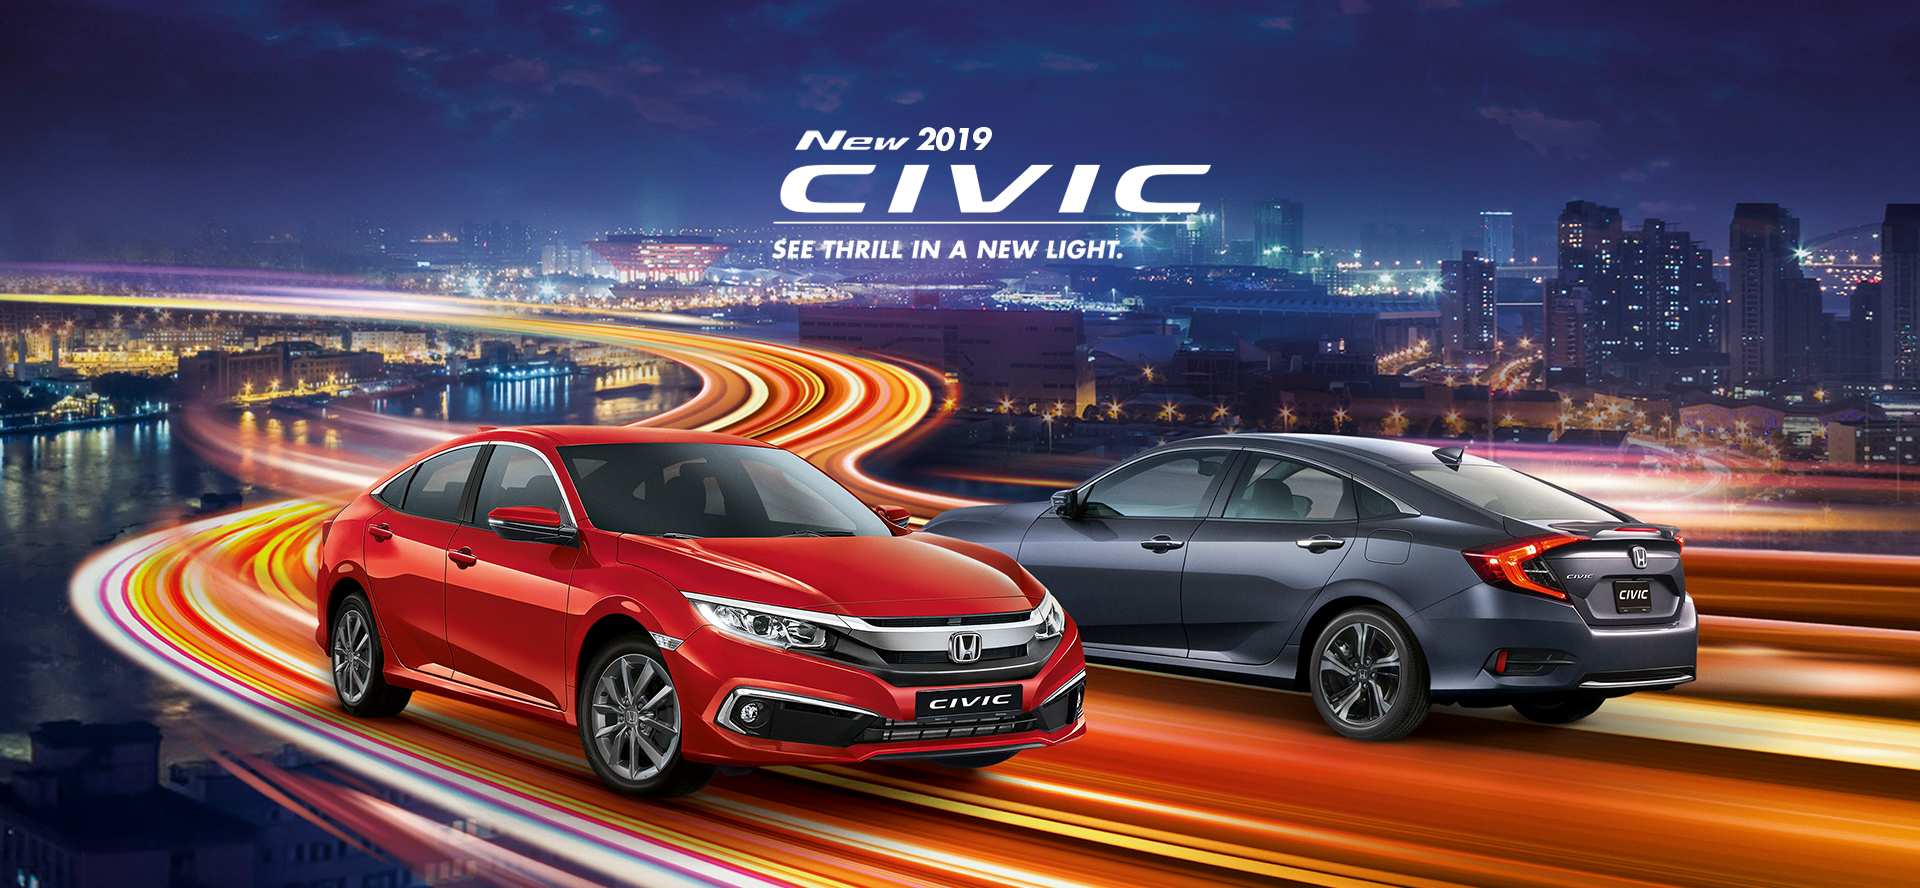 Civic Honda Civic